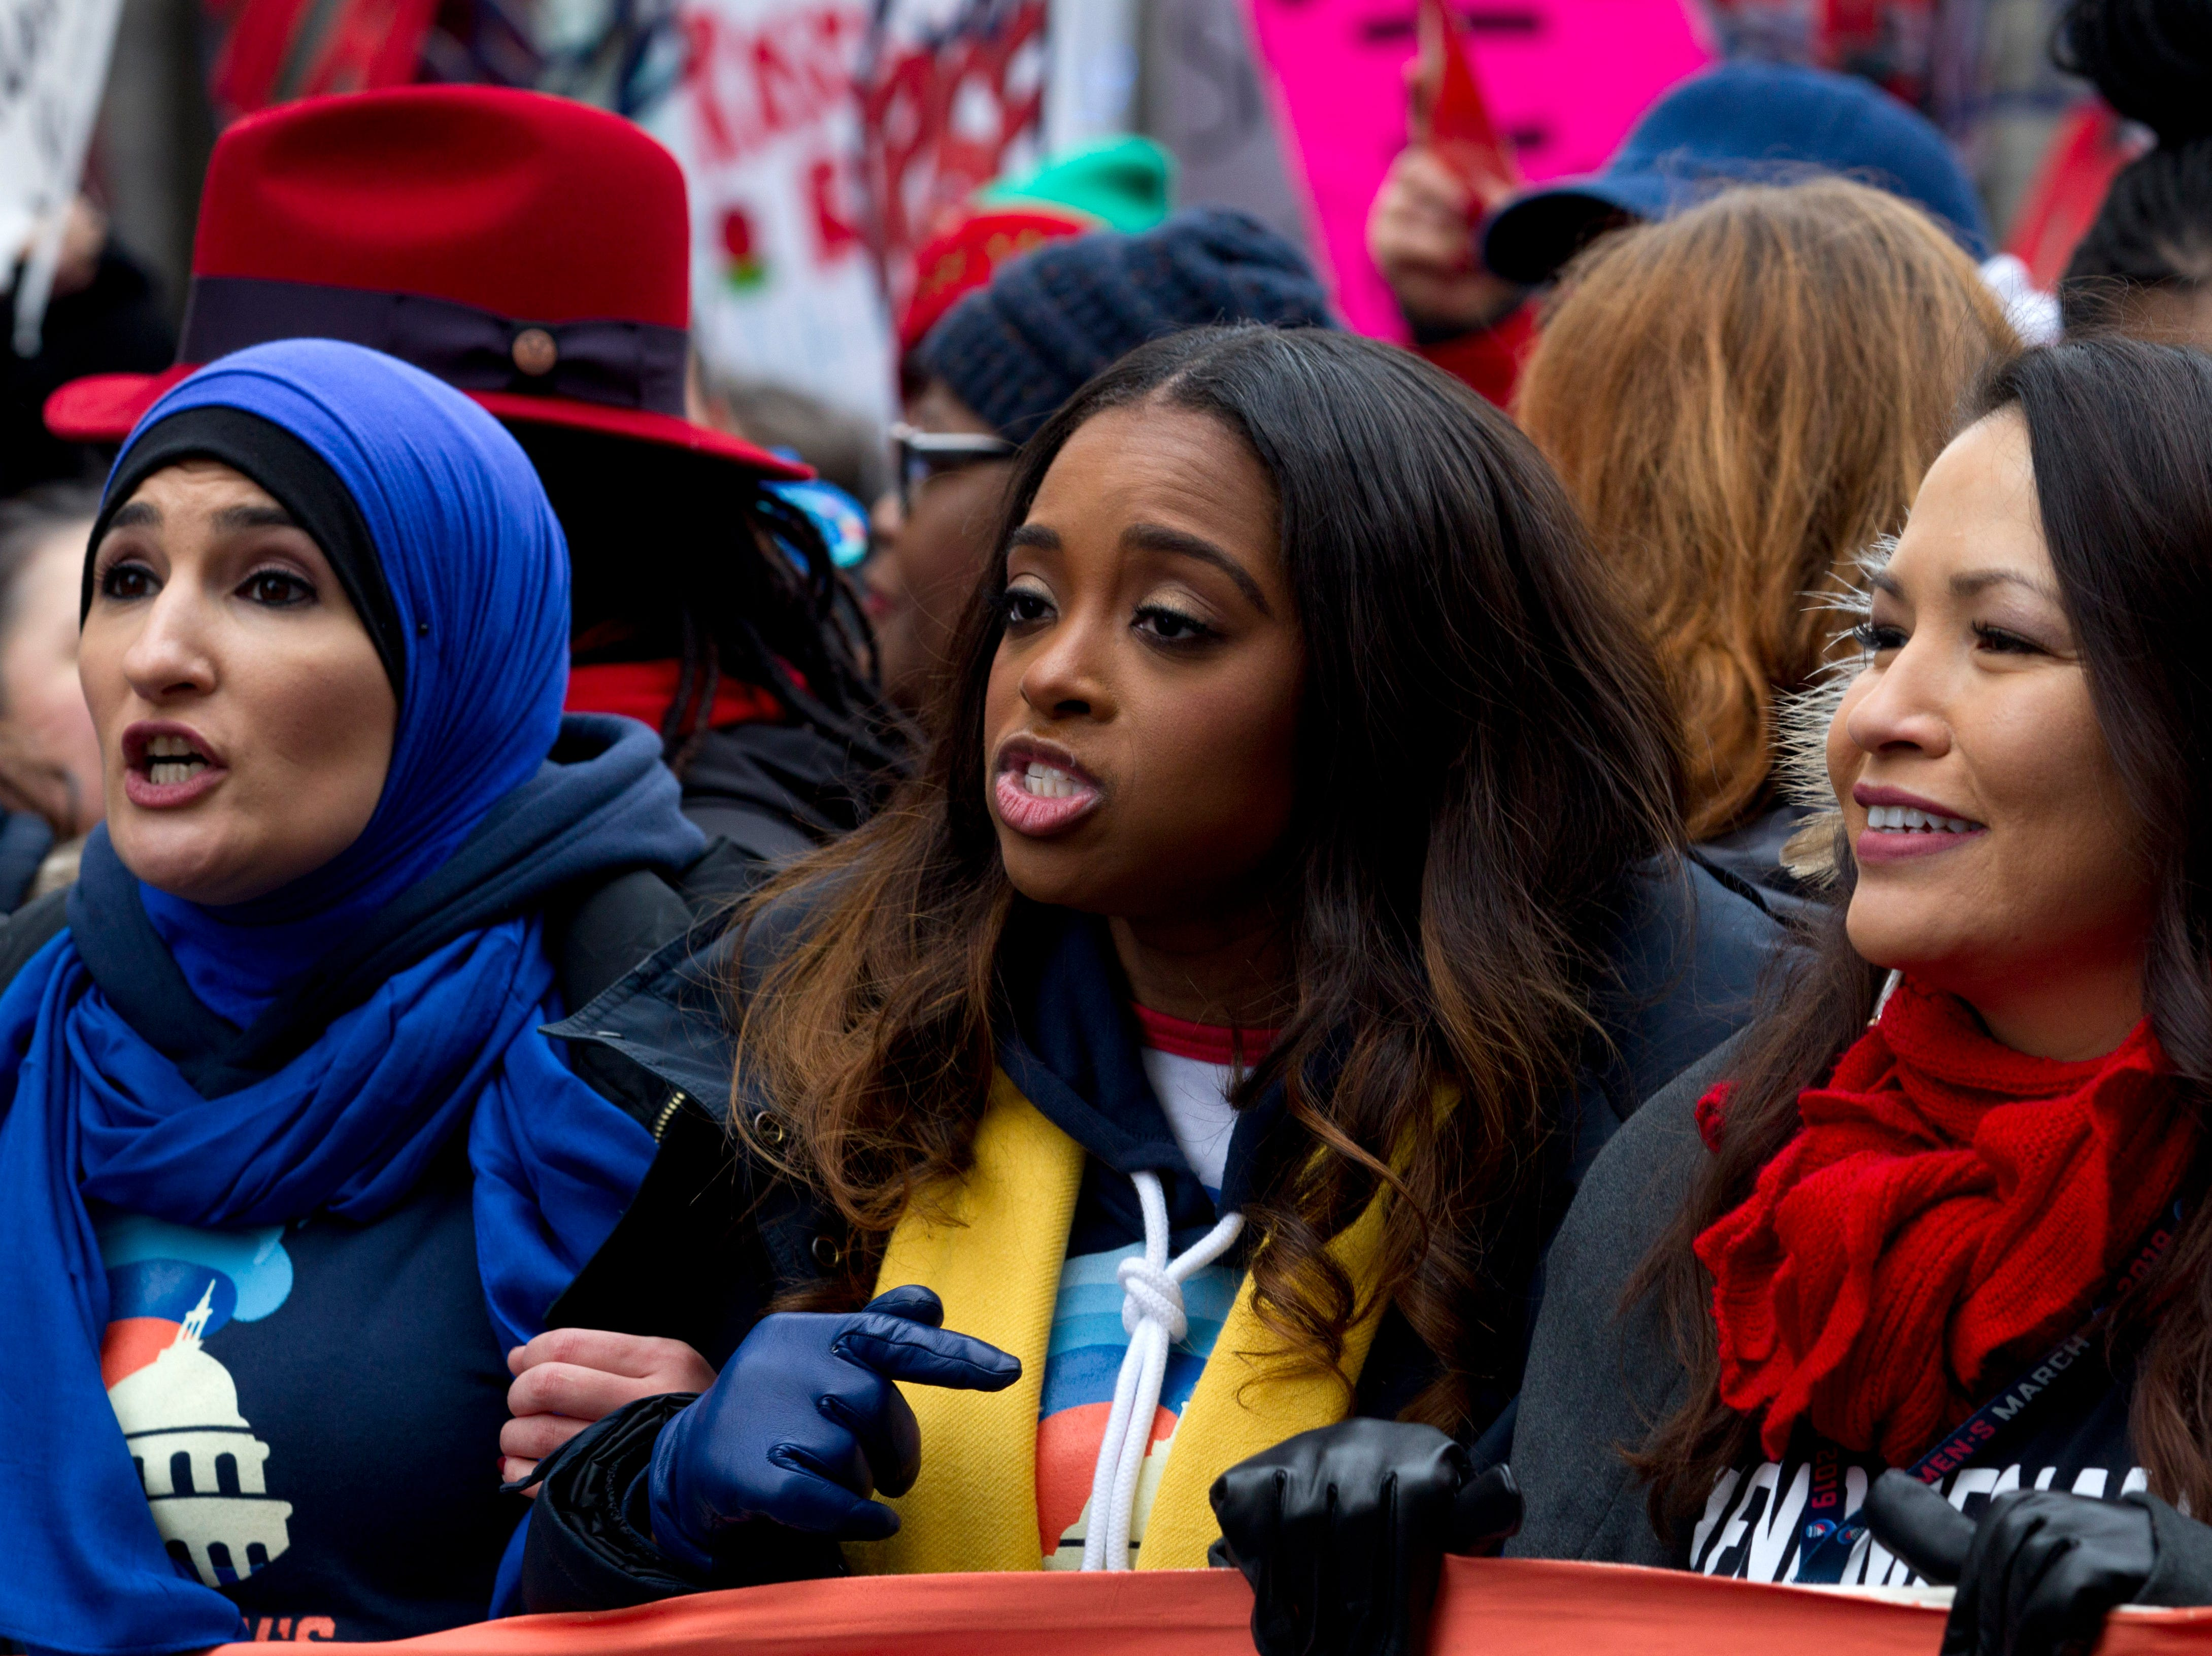 Co-presidents of the 2019 Women's March, Linda Sarsour, left, and Tamika Mallory, center, join other demonstrators on Pennsylvania Avenue during the Women's March in Washington on Saturday, Jan. 19, 2019.